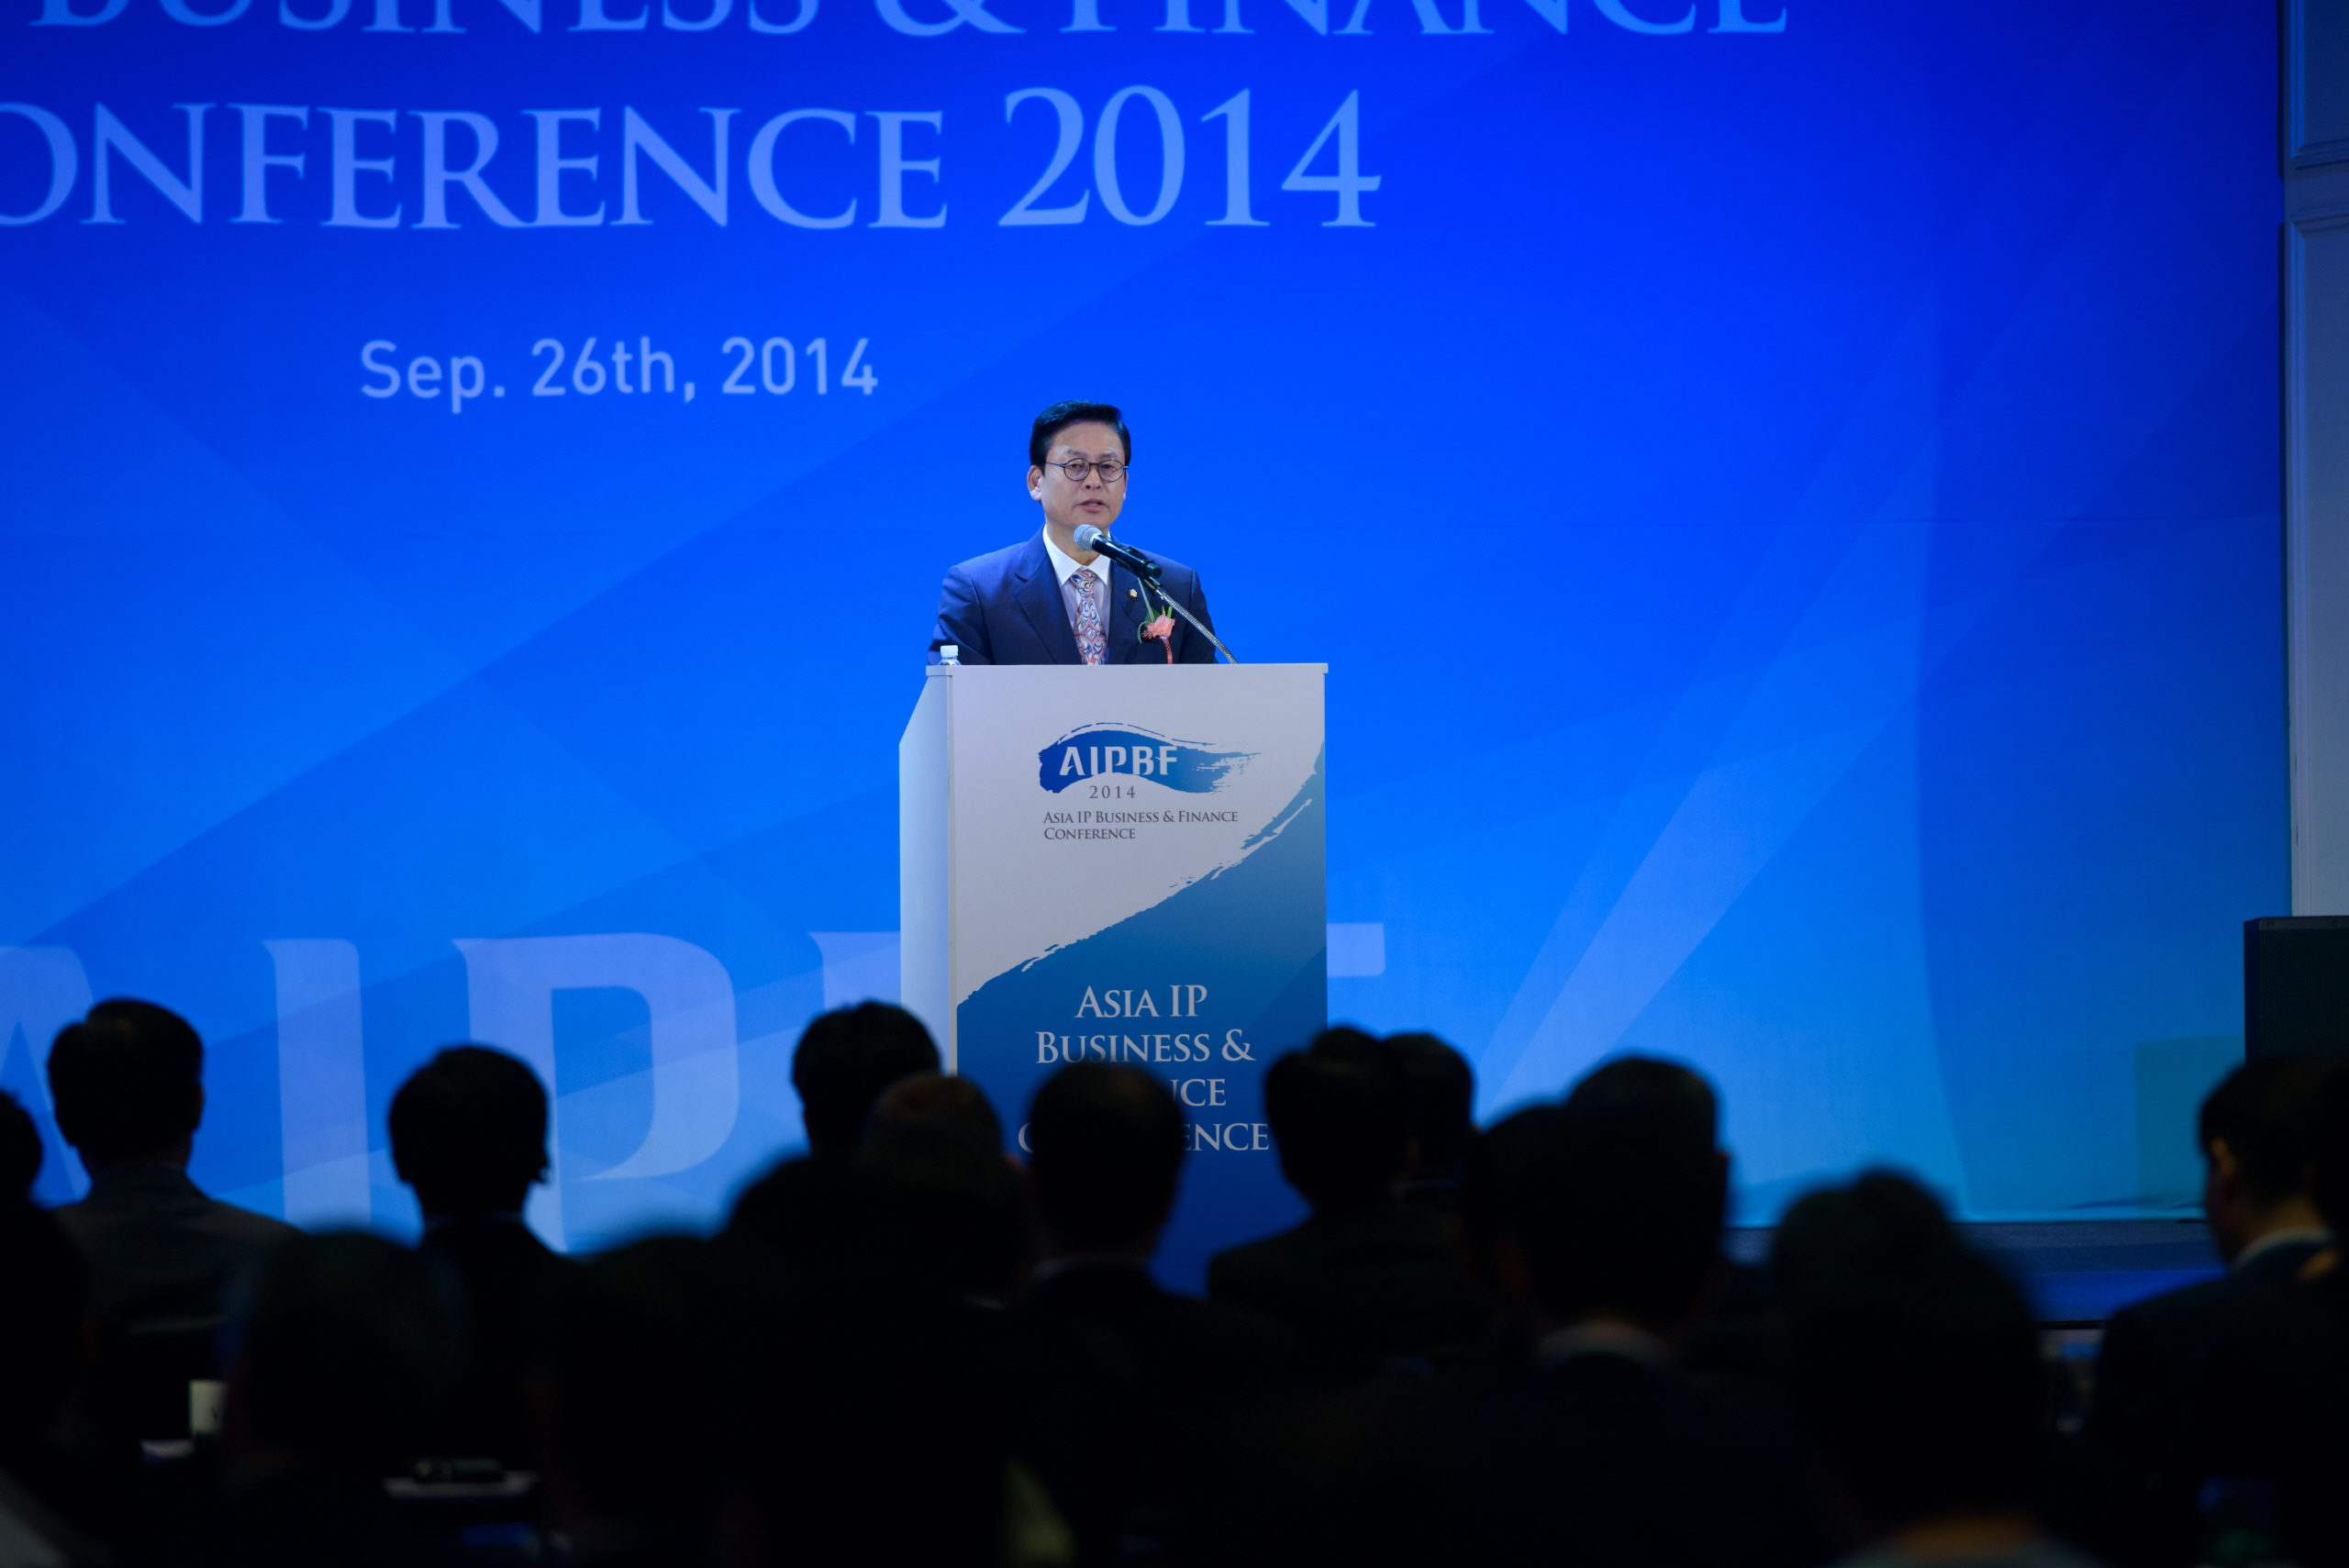 2014-09-26-AIPBF-Conference-5705